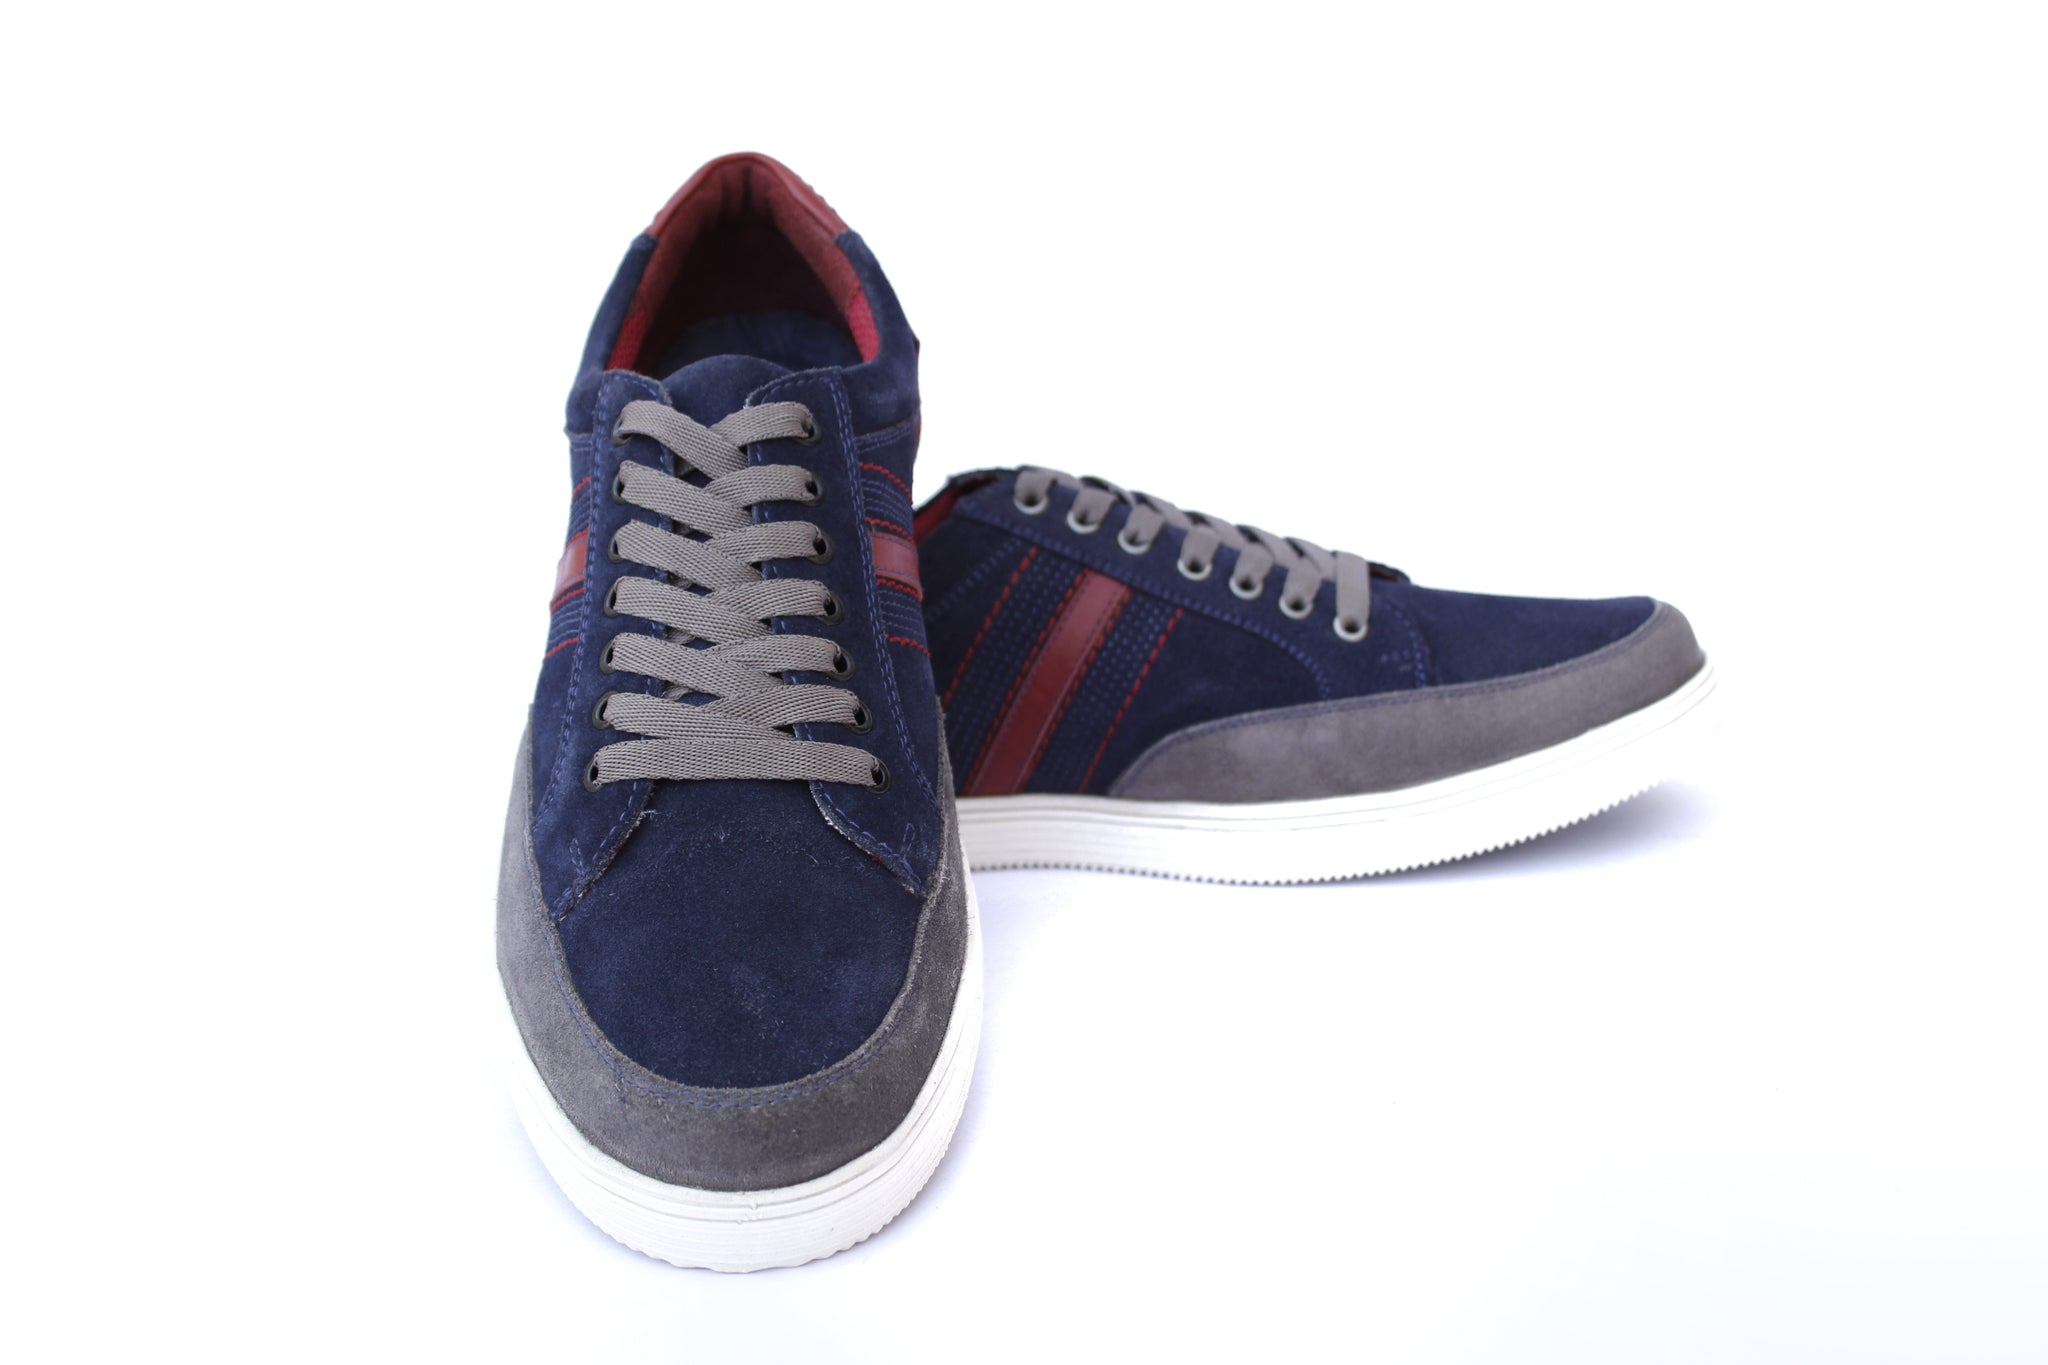 Overdrive 9 2 5 Lunar Groovy Casual Sneaker